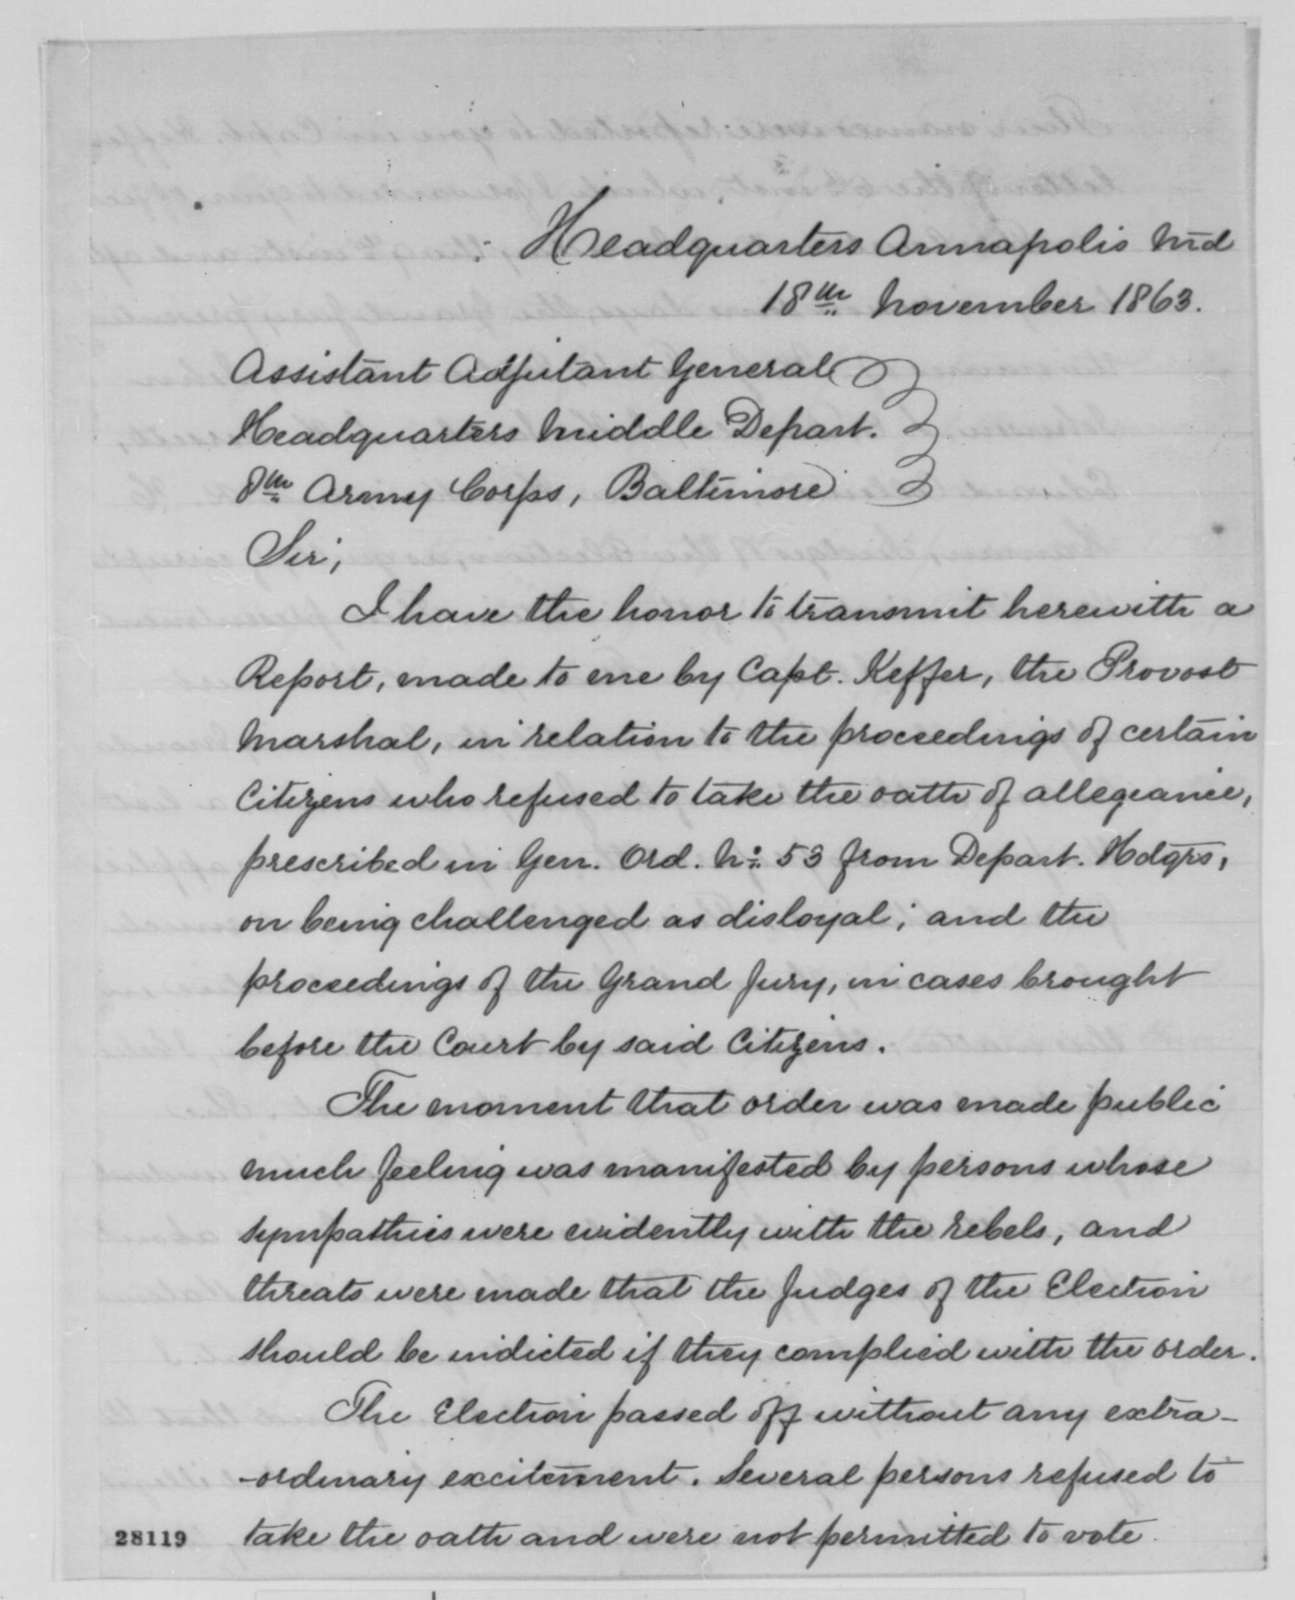 Carlos A. Waite to Assistant Adjutant General, 8th Army Corps, Wednesday, November 18, 1863  (Sends report concerning disloyal persons in Maryland)